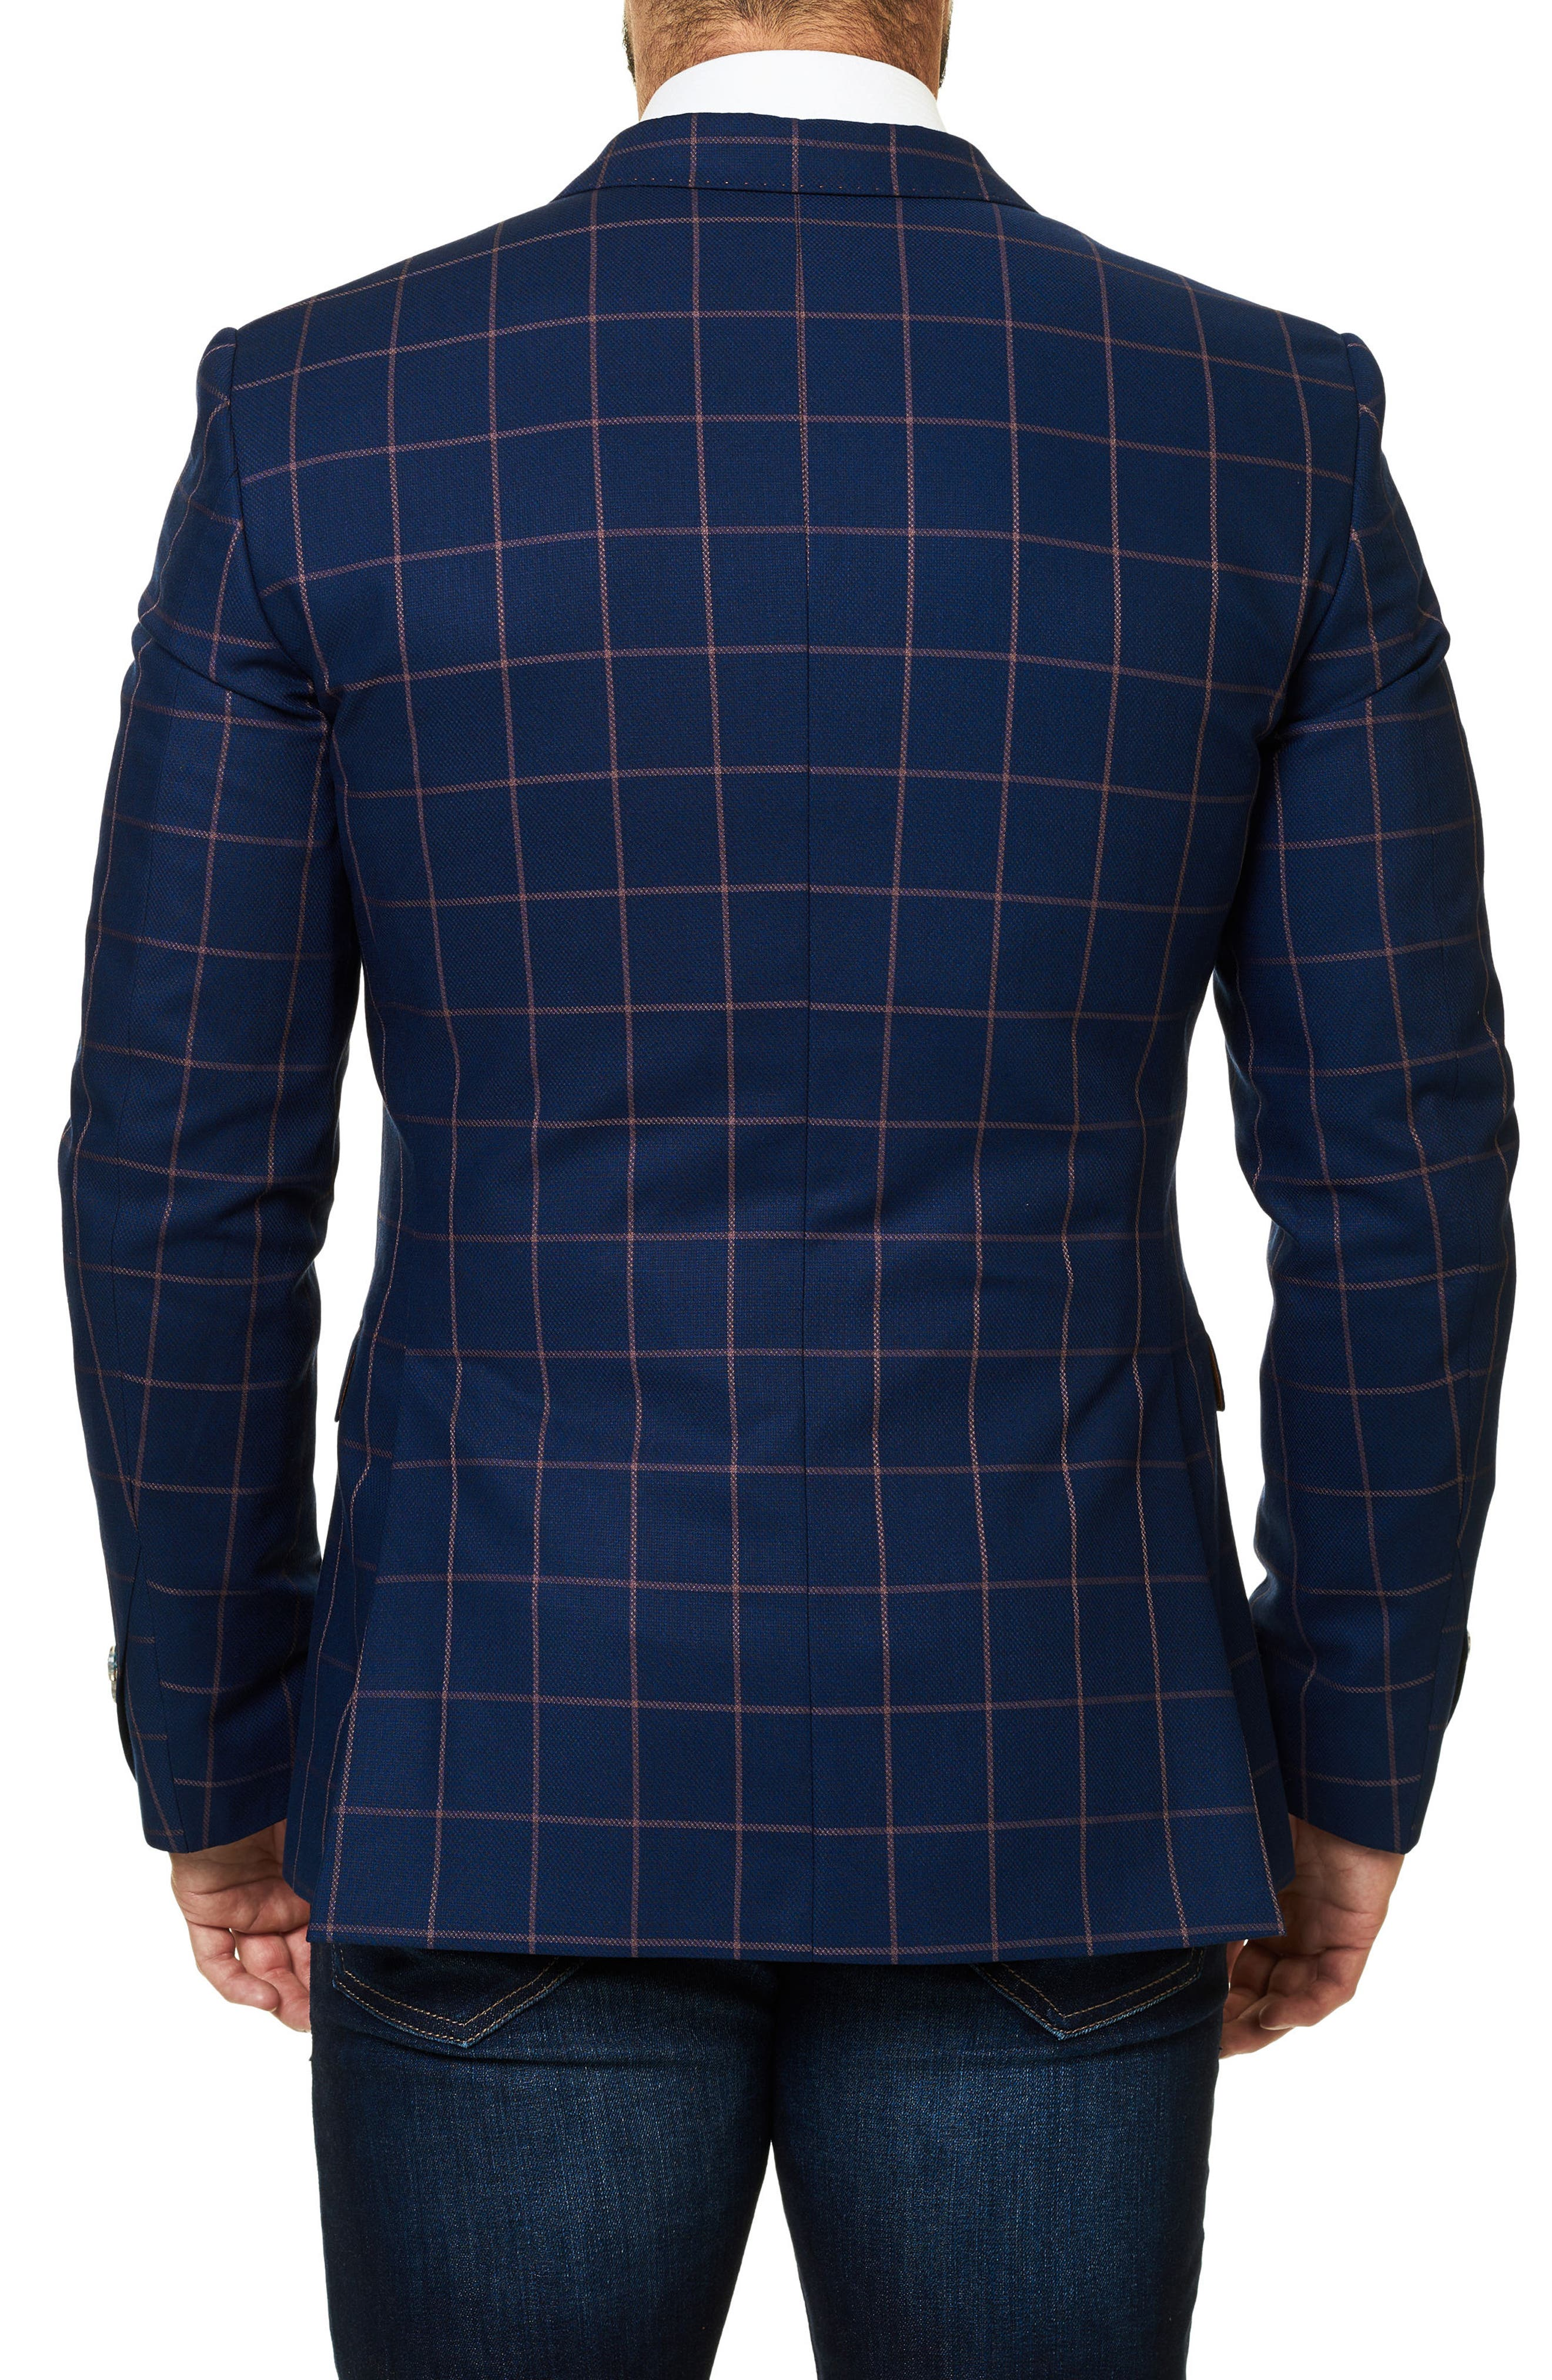 Descarte Windowpane Sport Coat,                             Alternate thumbnail 2, color,                             Medium Blue